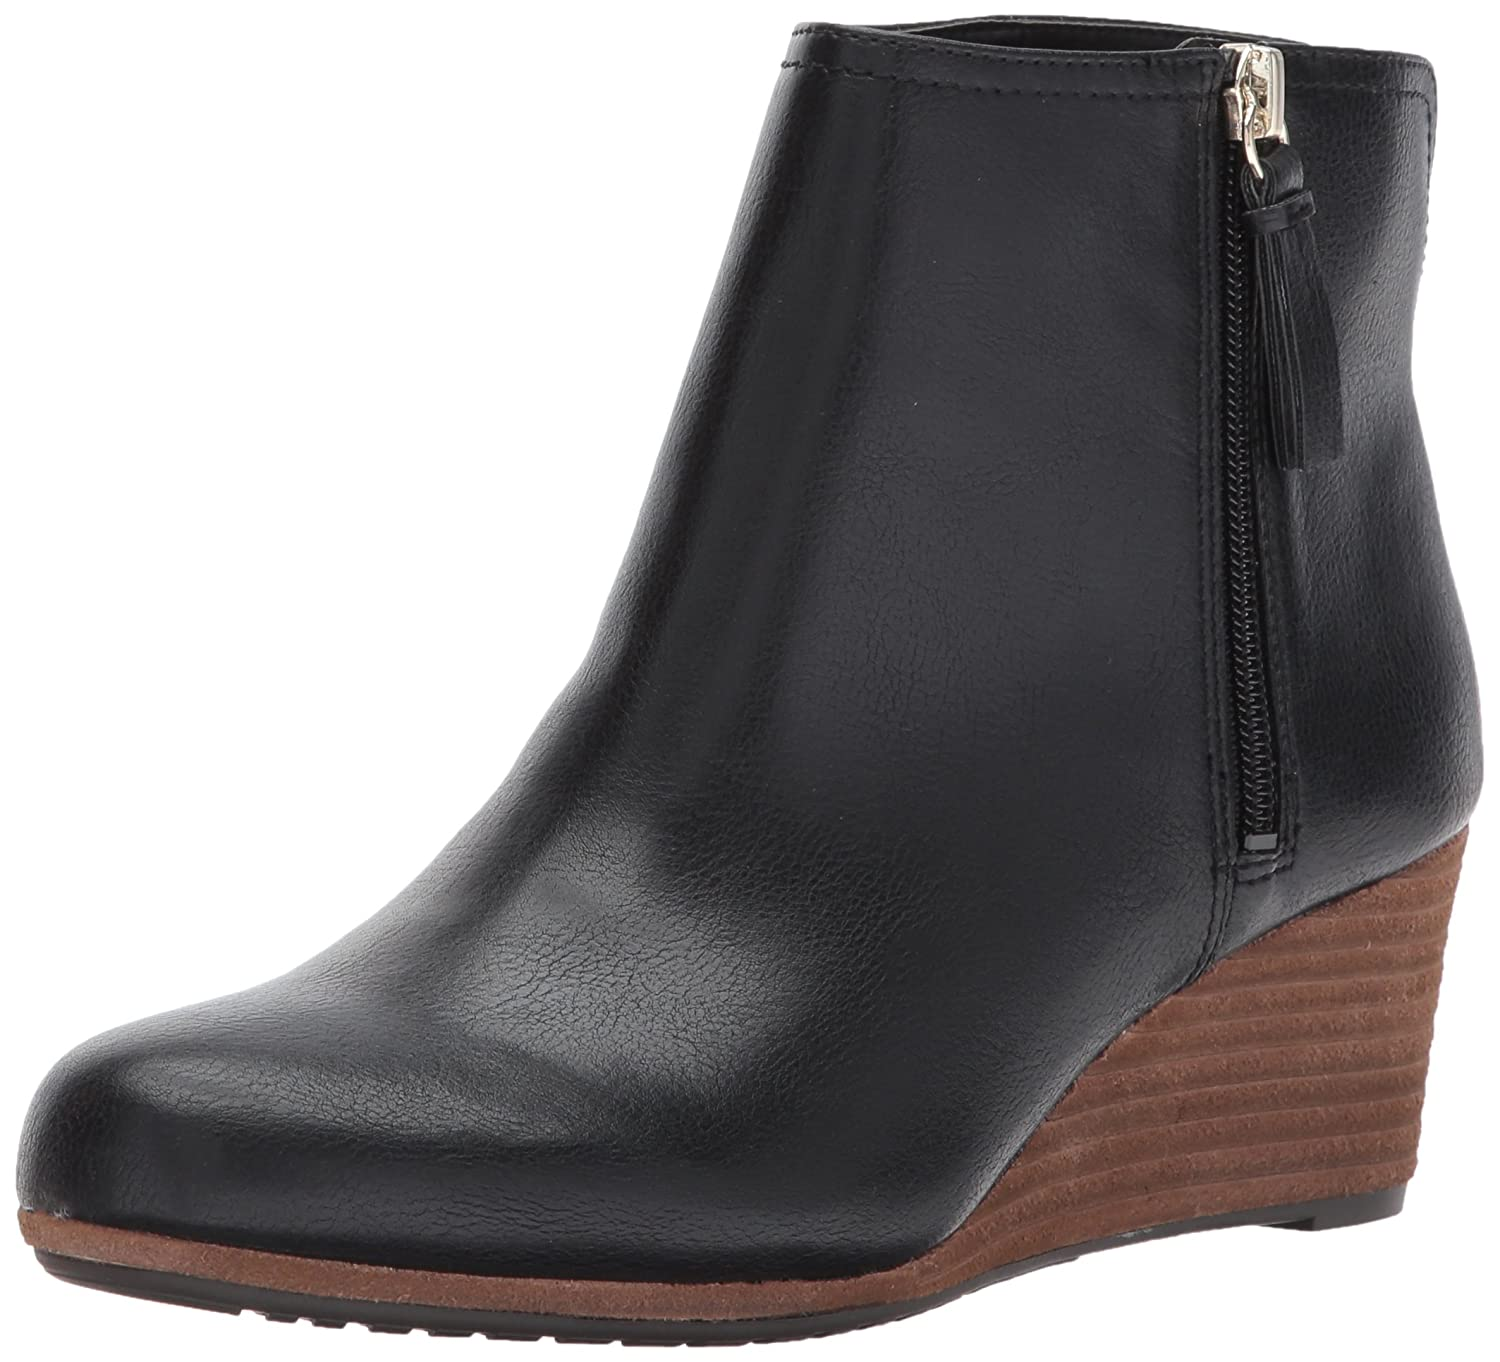 182e6a06fa6 Dr. Scholl s Womens Dwell Ankle Boots  Amazon.ca  Shoes   Handbags